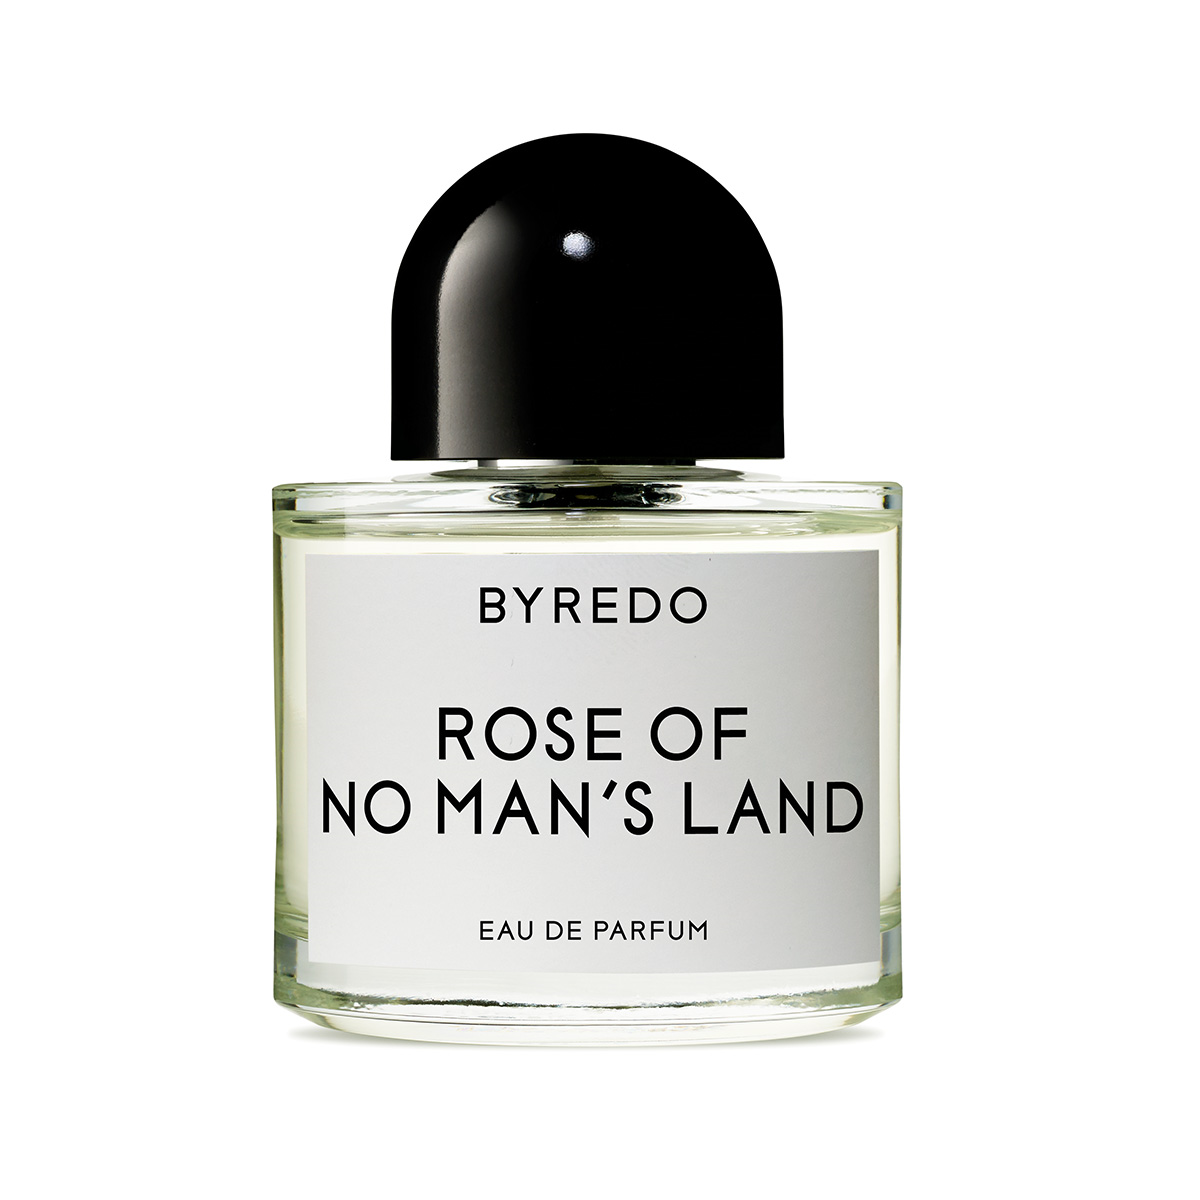 Byredo Rose Of No Man`s Land edp 100ml Tester, Sweden